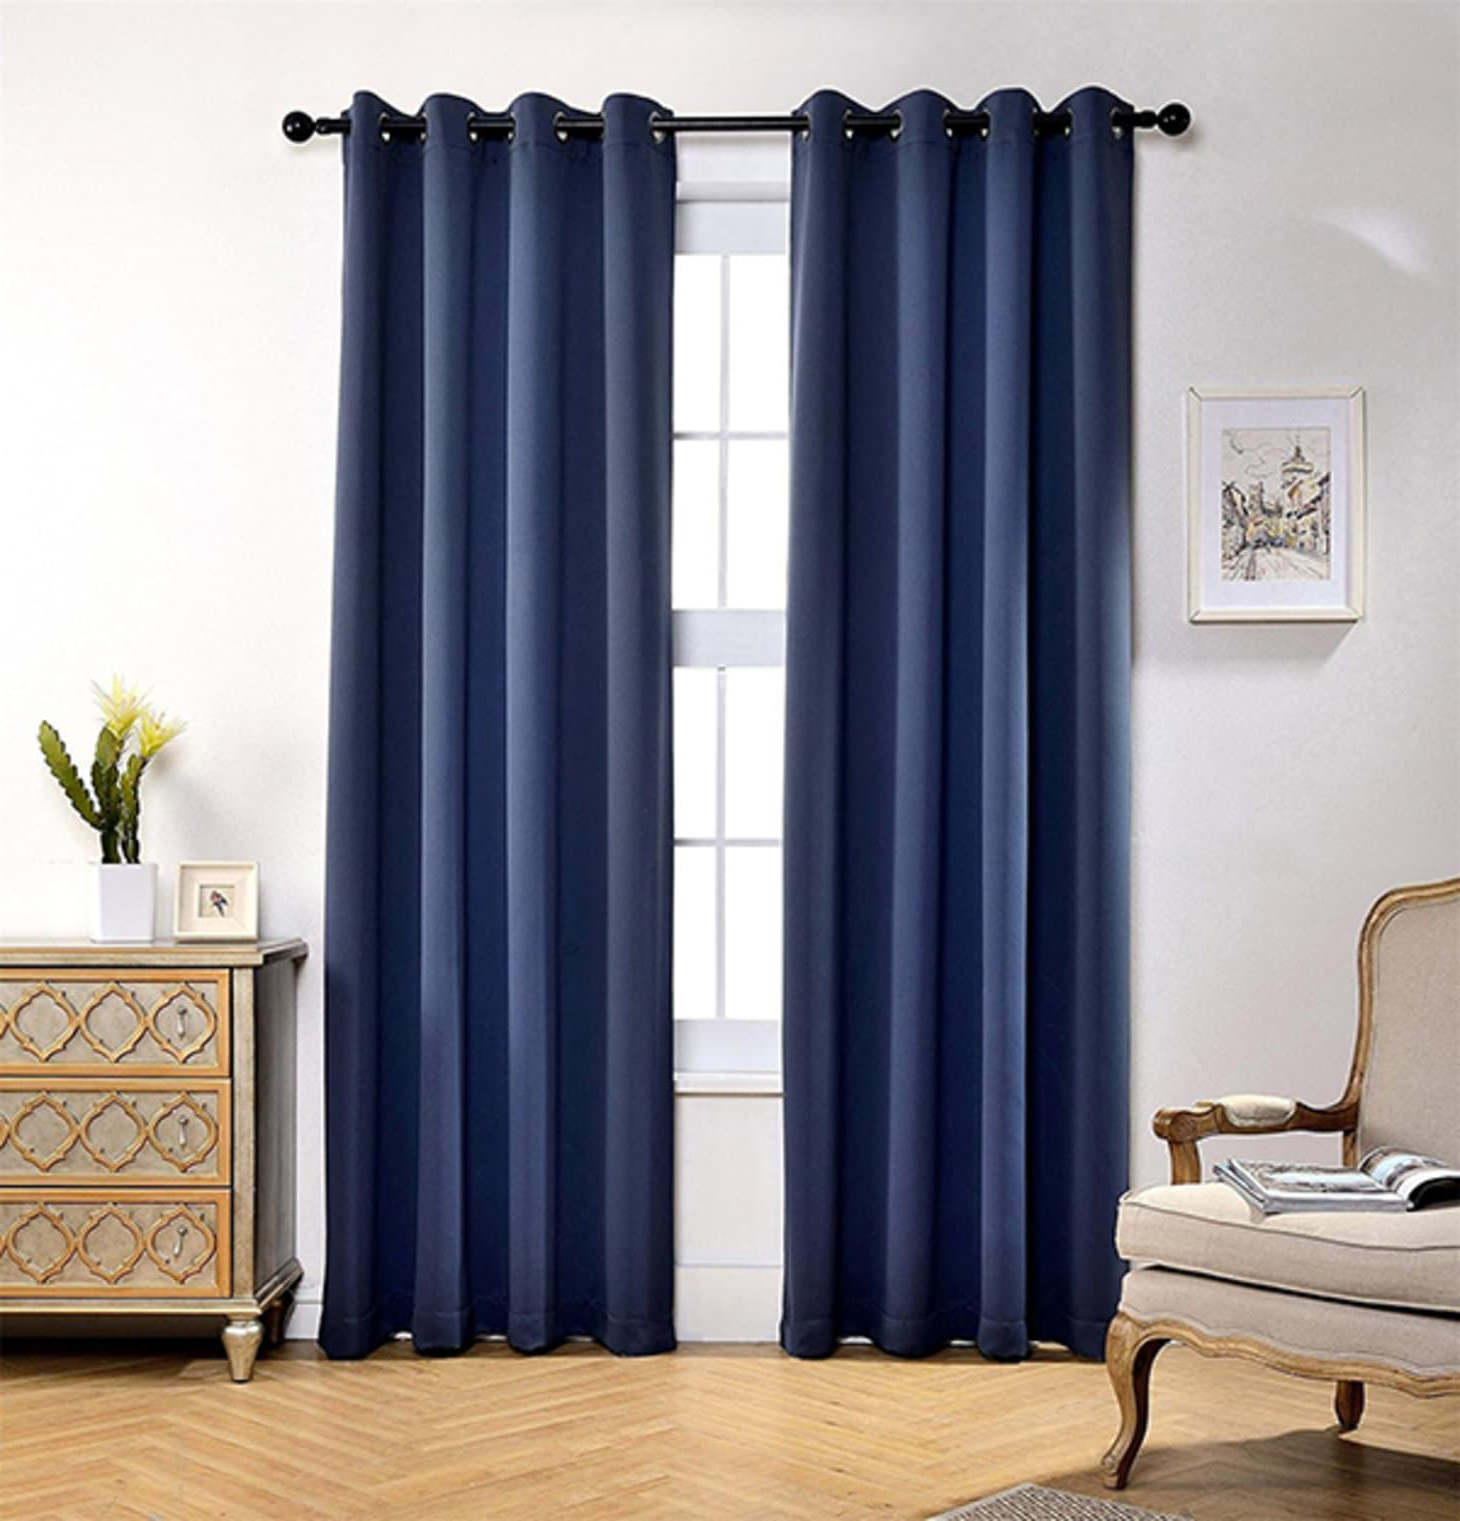 Most Recently Released Solid Insulated Thermal Blackout Long Length Curtain Panel Pairs For Best Insulated Blackout Curtains (View 20 of 20)